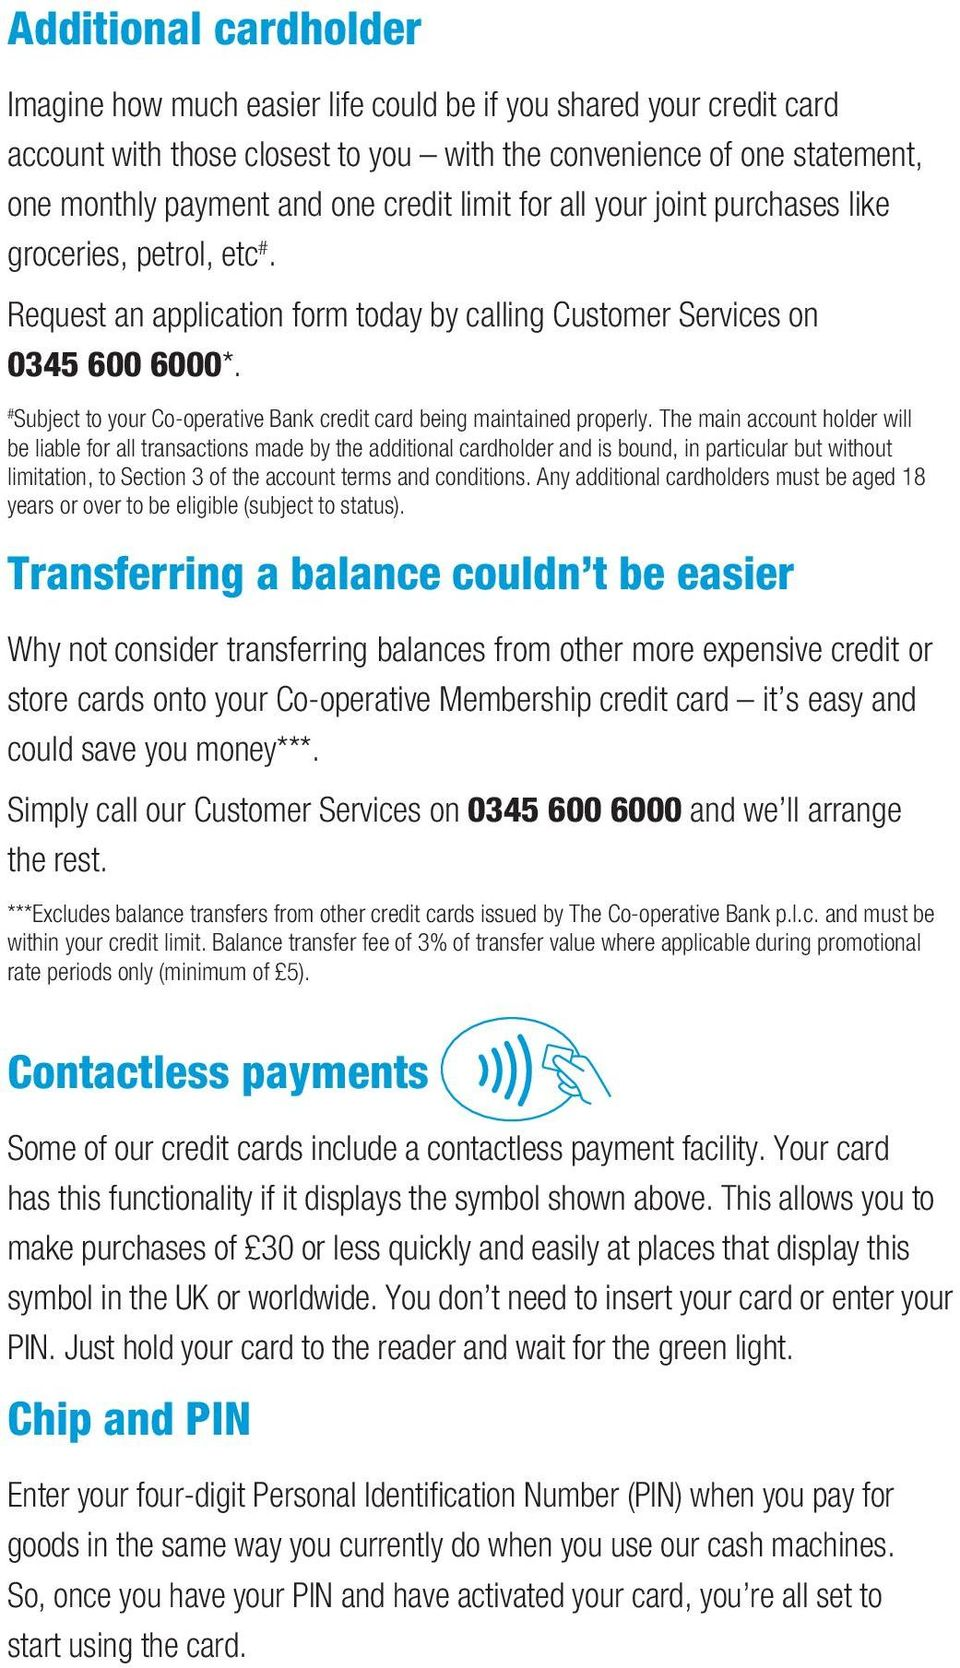 # Subject to your Co-operative Bank credit card being maintained properly.